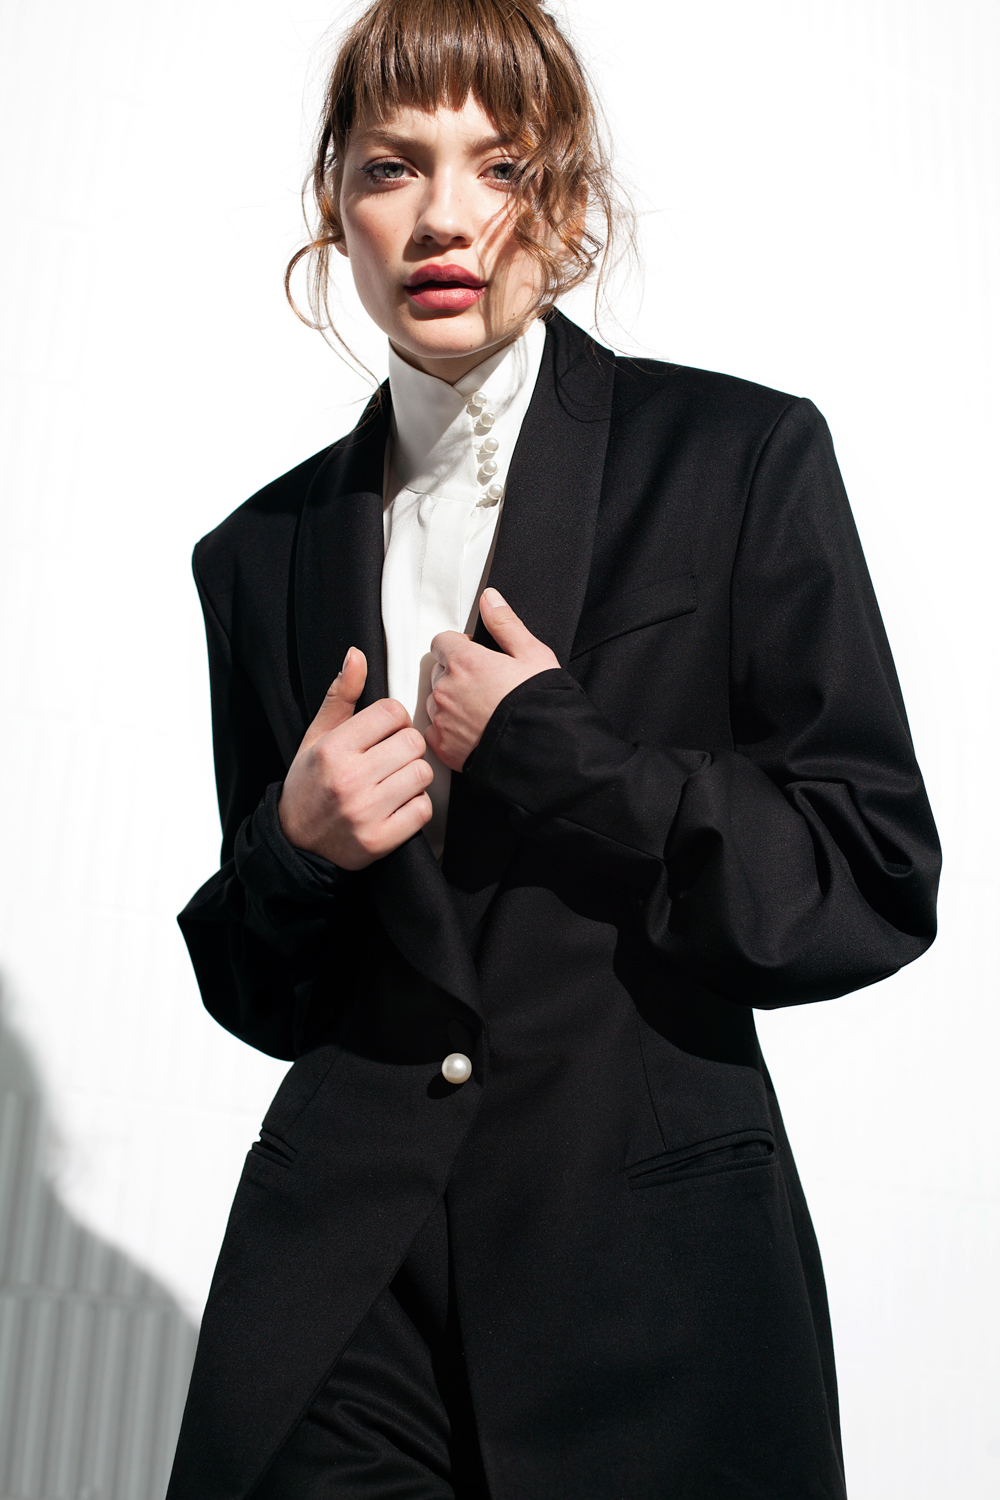 Kerris Blazer by Manurí on curated-crowd.com